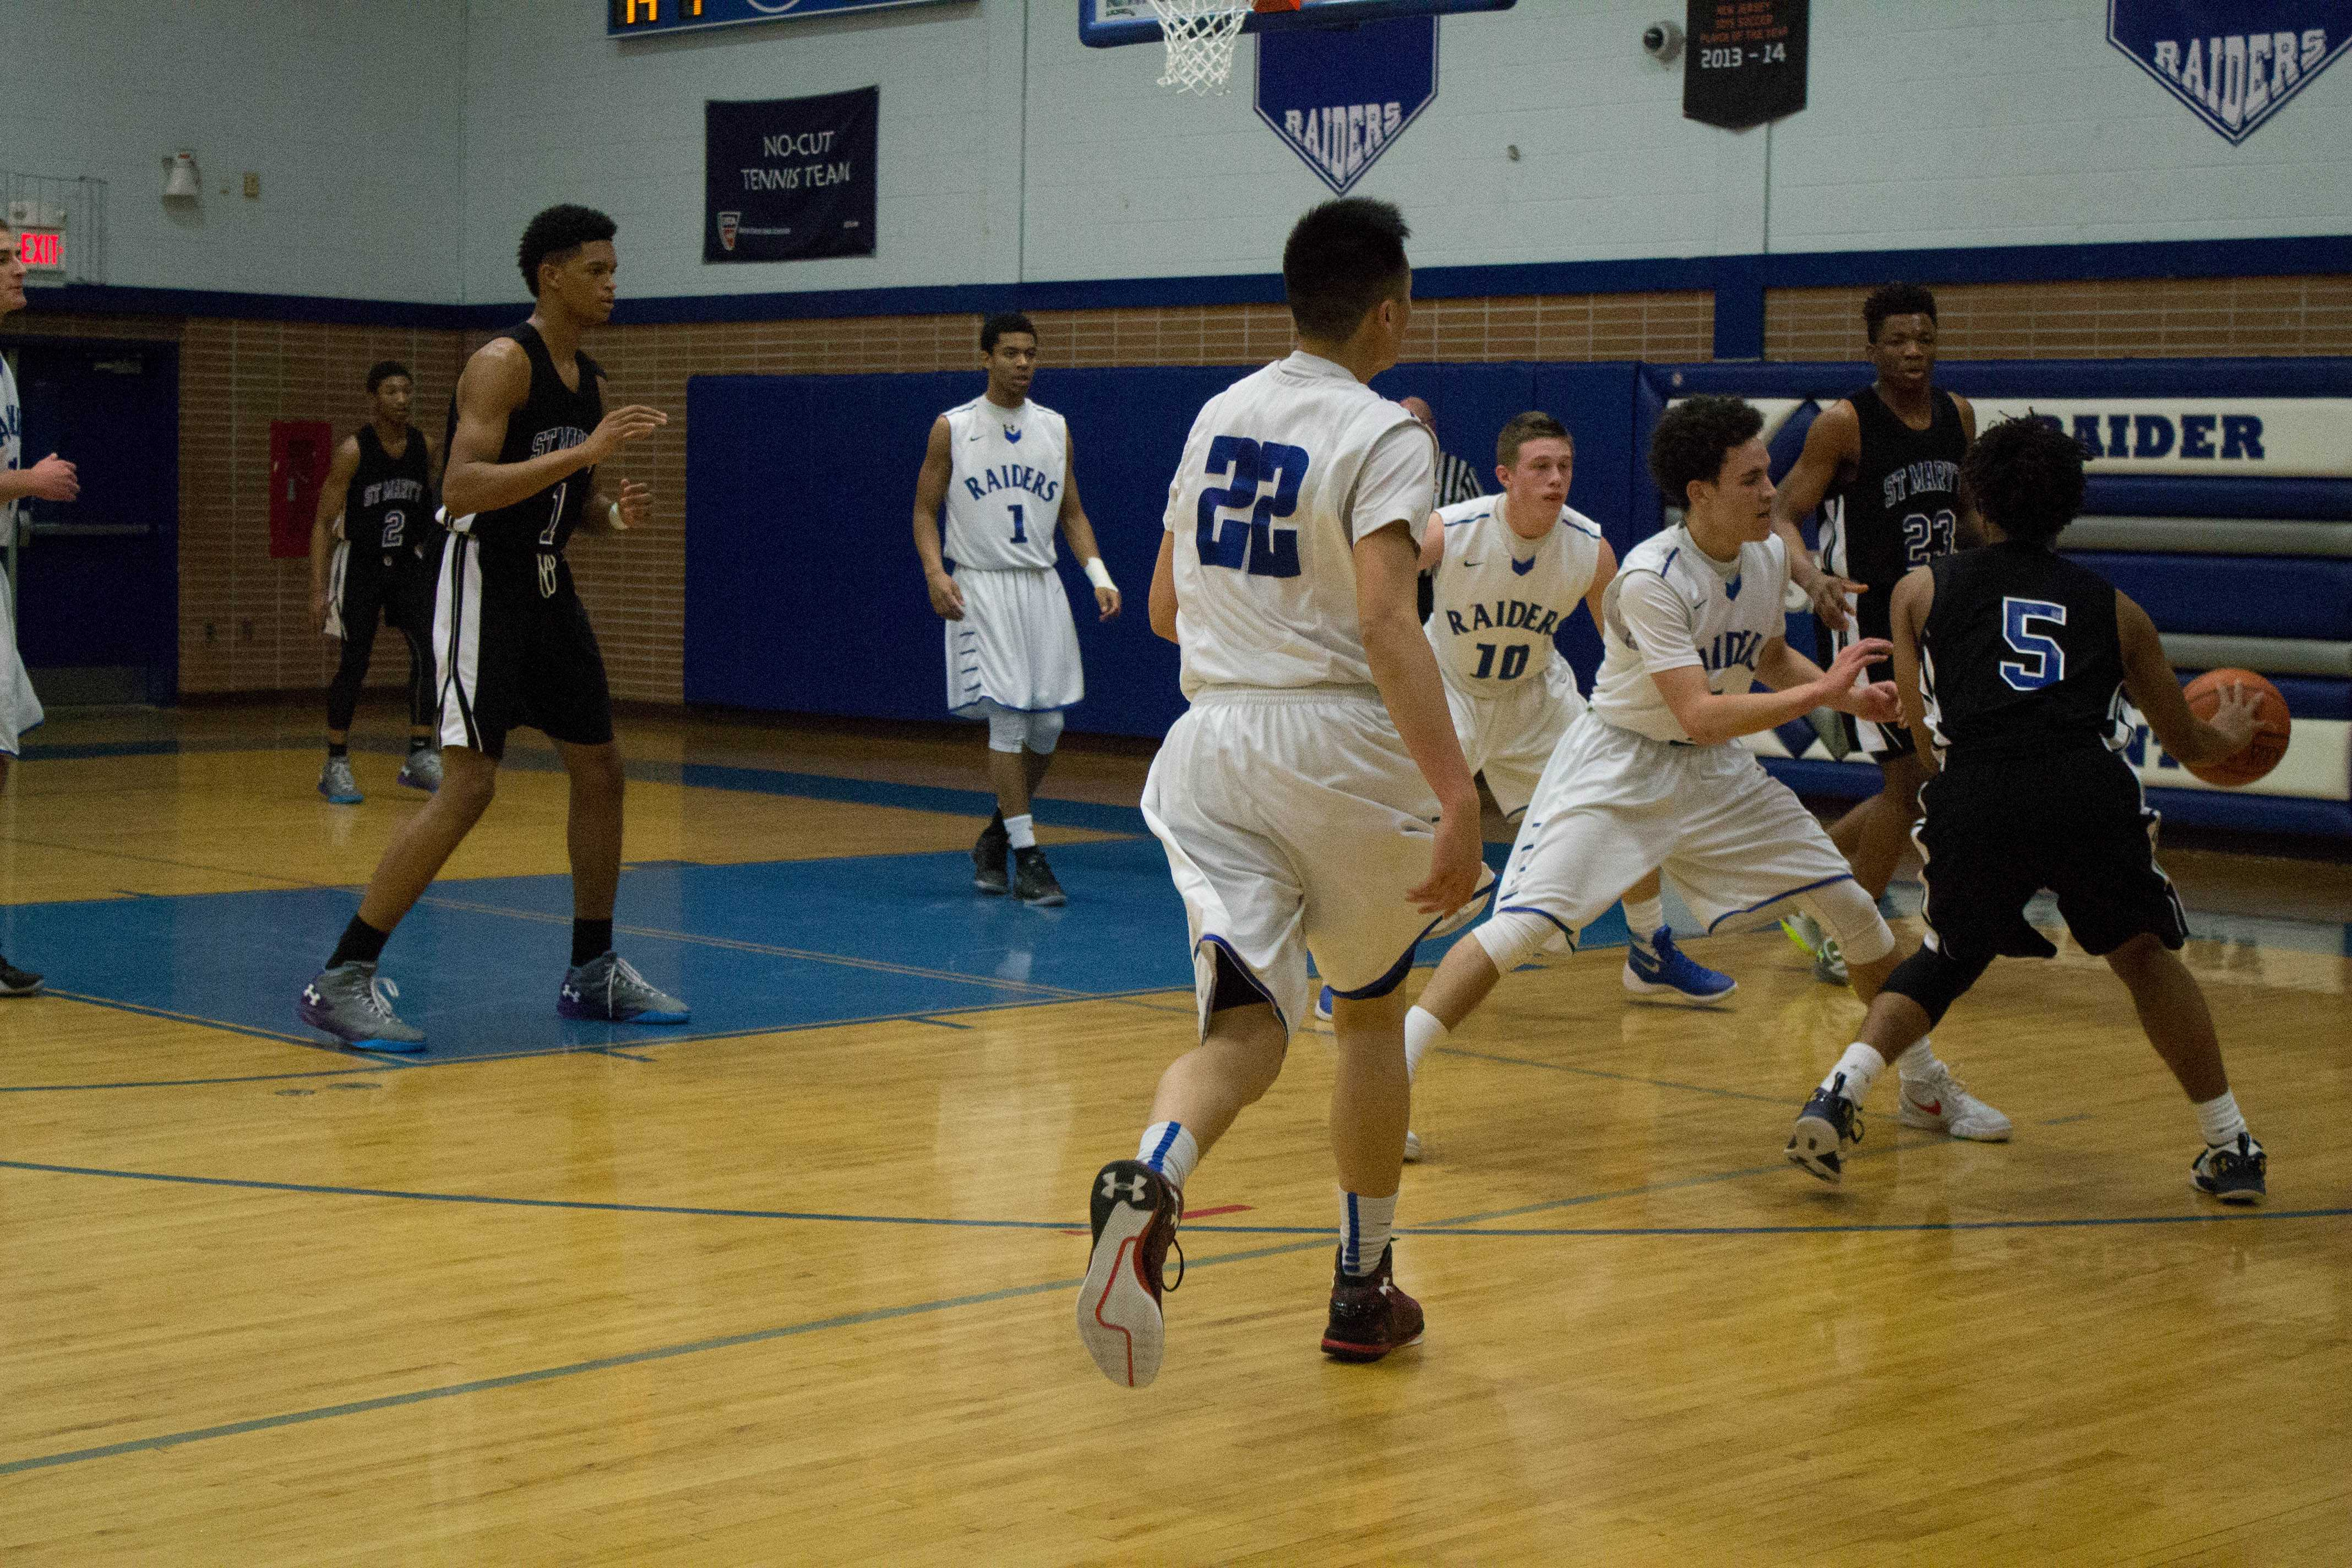 Shooting guard, Theodore Willmott attempts to steal the ball away from St. Mary.